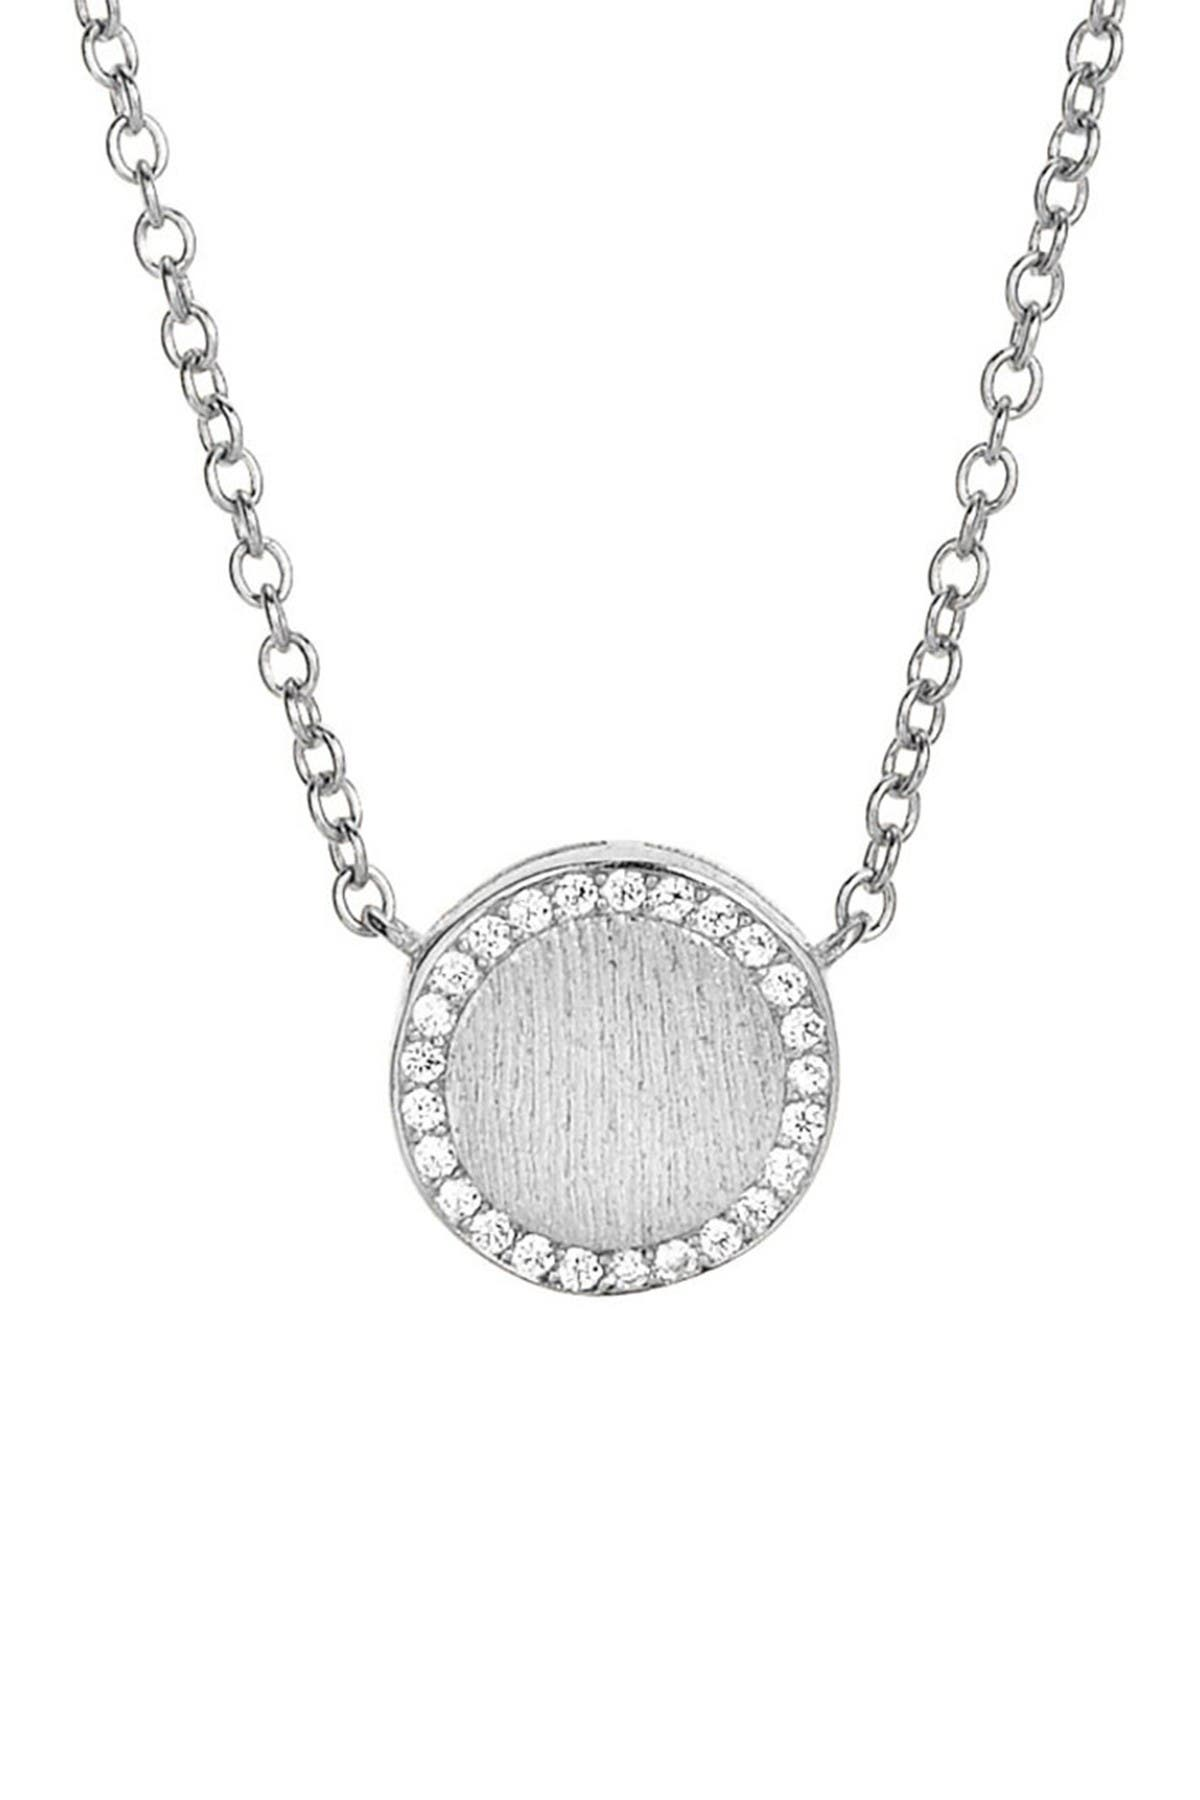 Image of Savvy Cie Sterling Silver CZ Halo Necklace